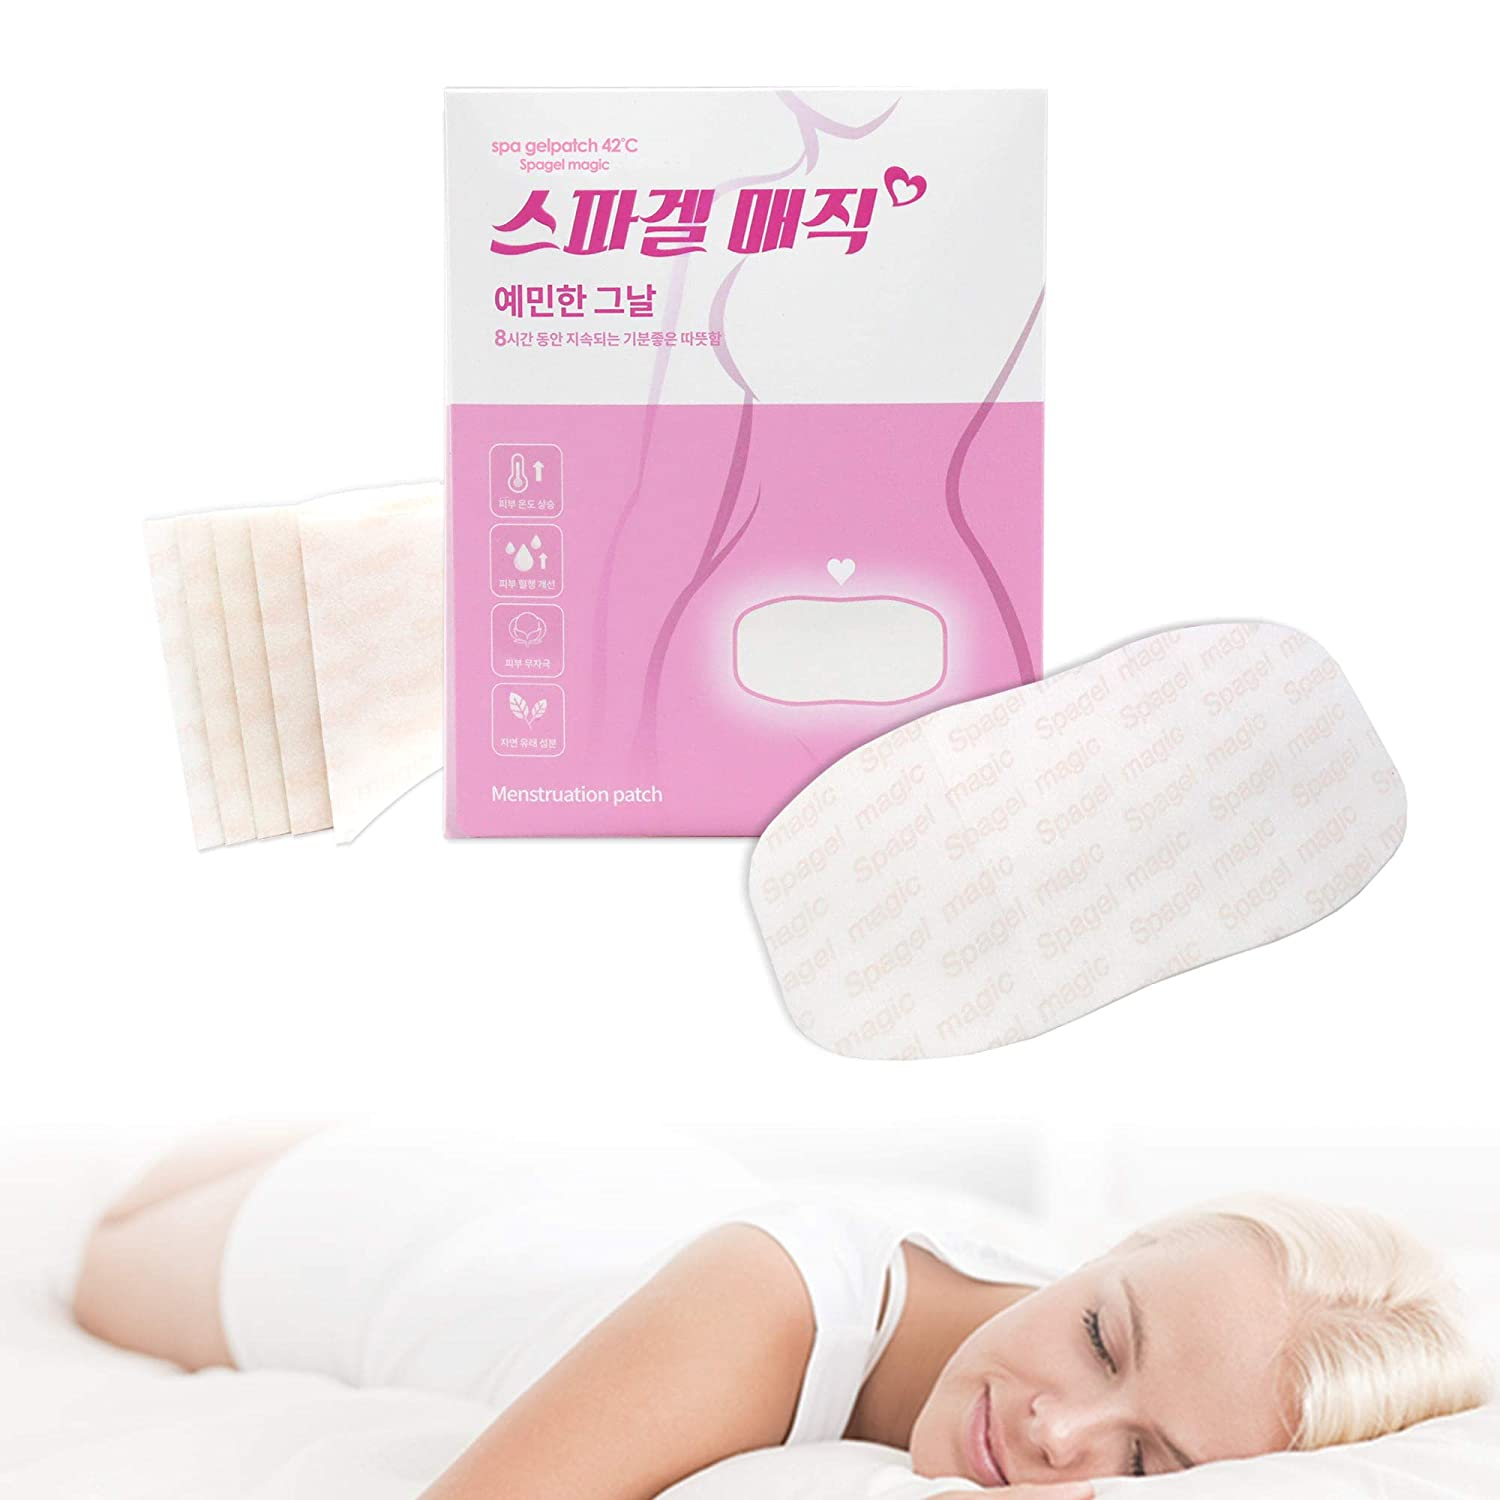 Spagel magic - Menstrual Cramp Period Pain Heating Pads Relief Heat PMS Female Hormones Balance Therapy Wraps Estrogen PMDD Disposable Back Neck, Capsaicin Natural Ingredients - spa gelpatch 42℃